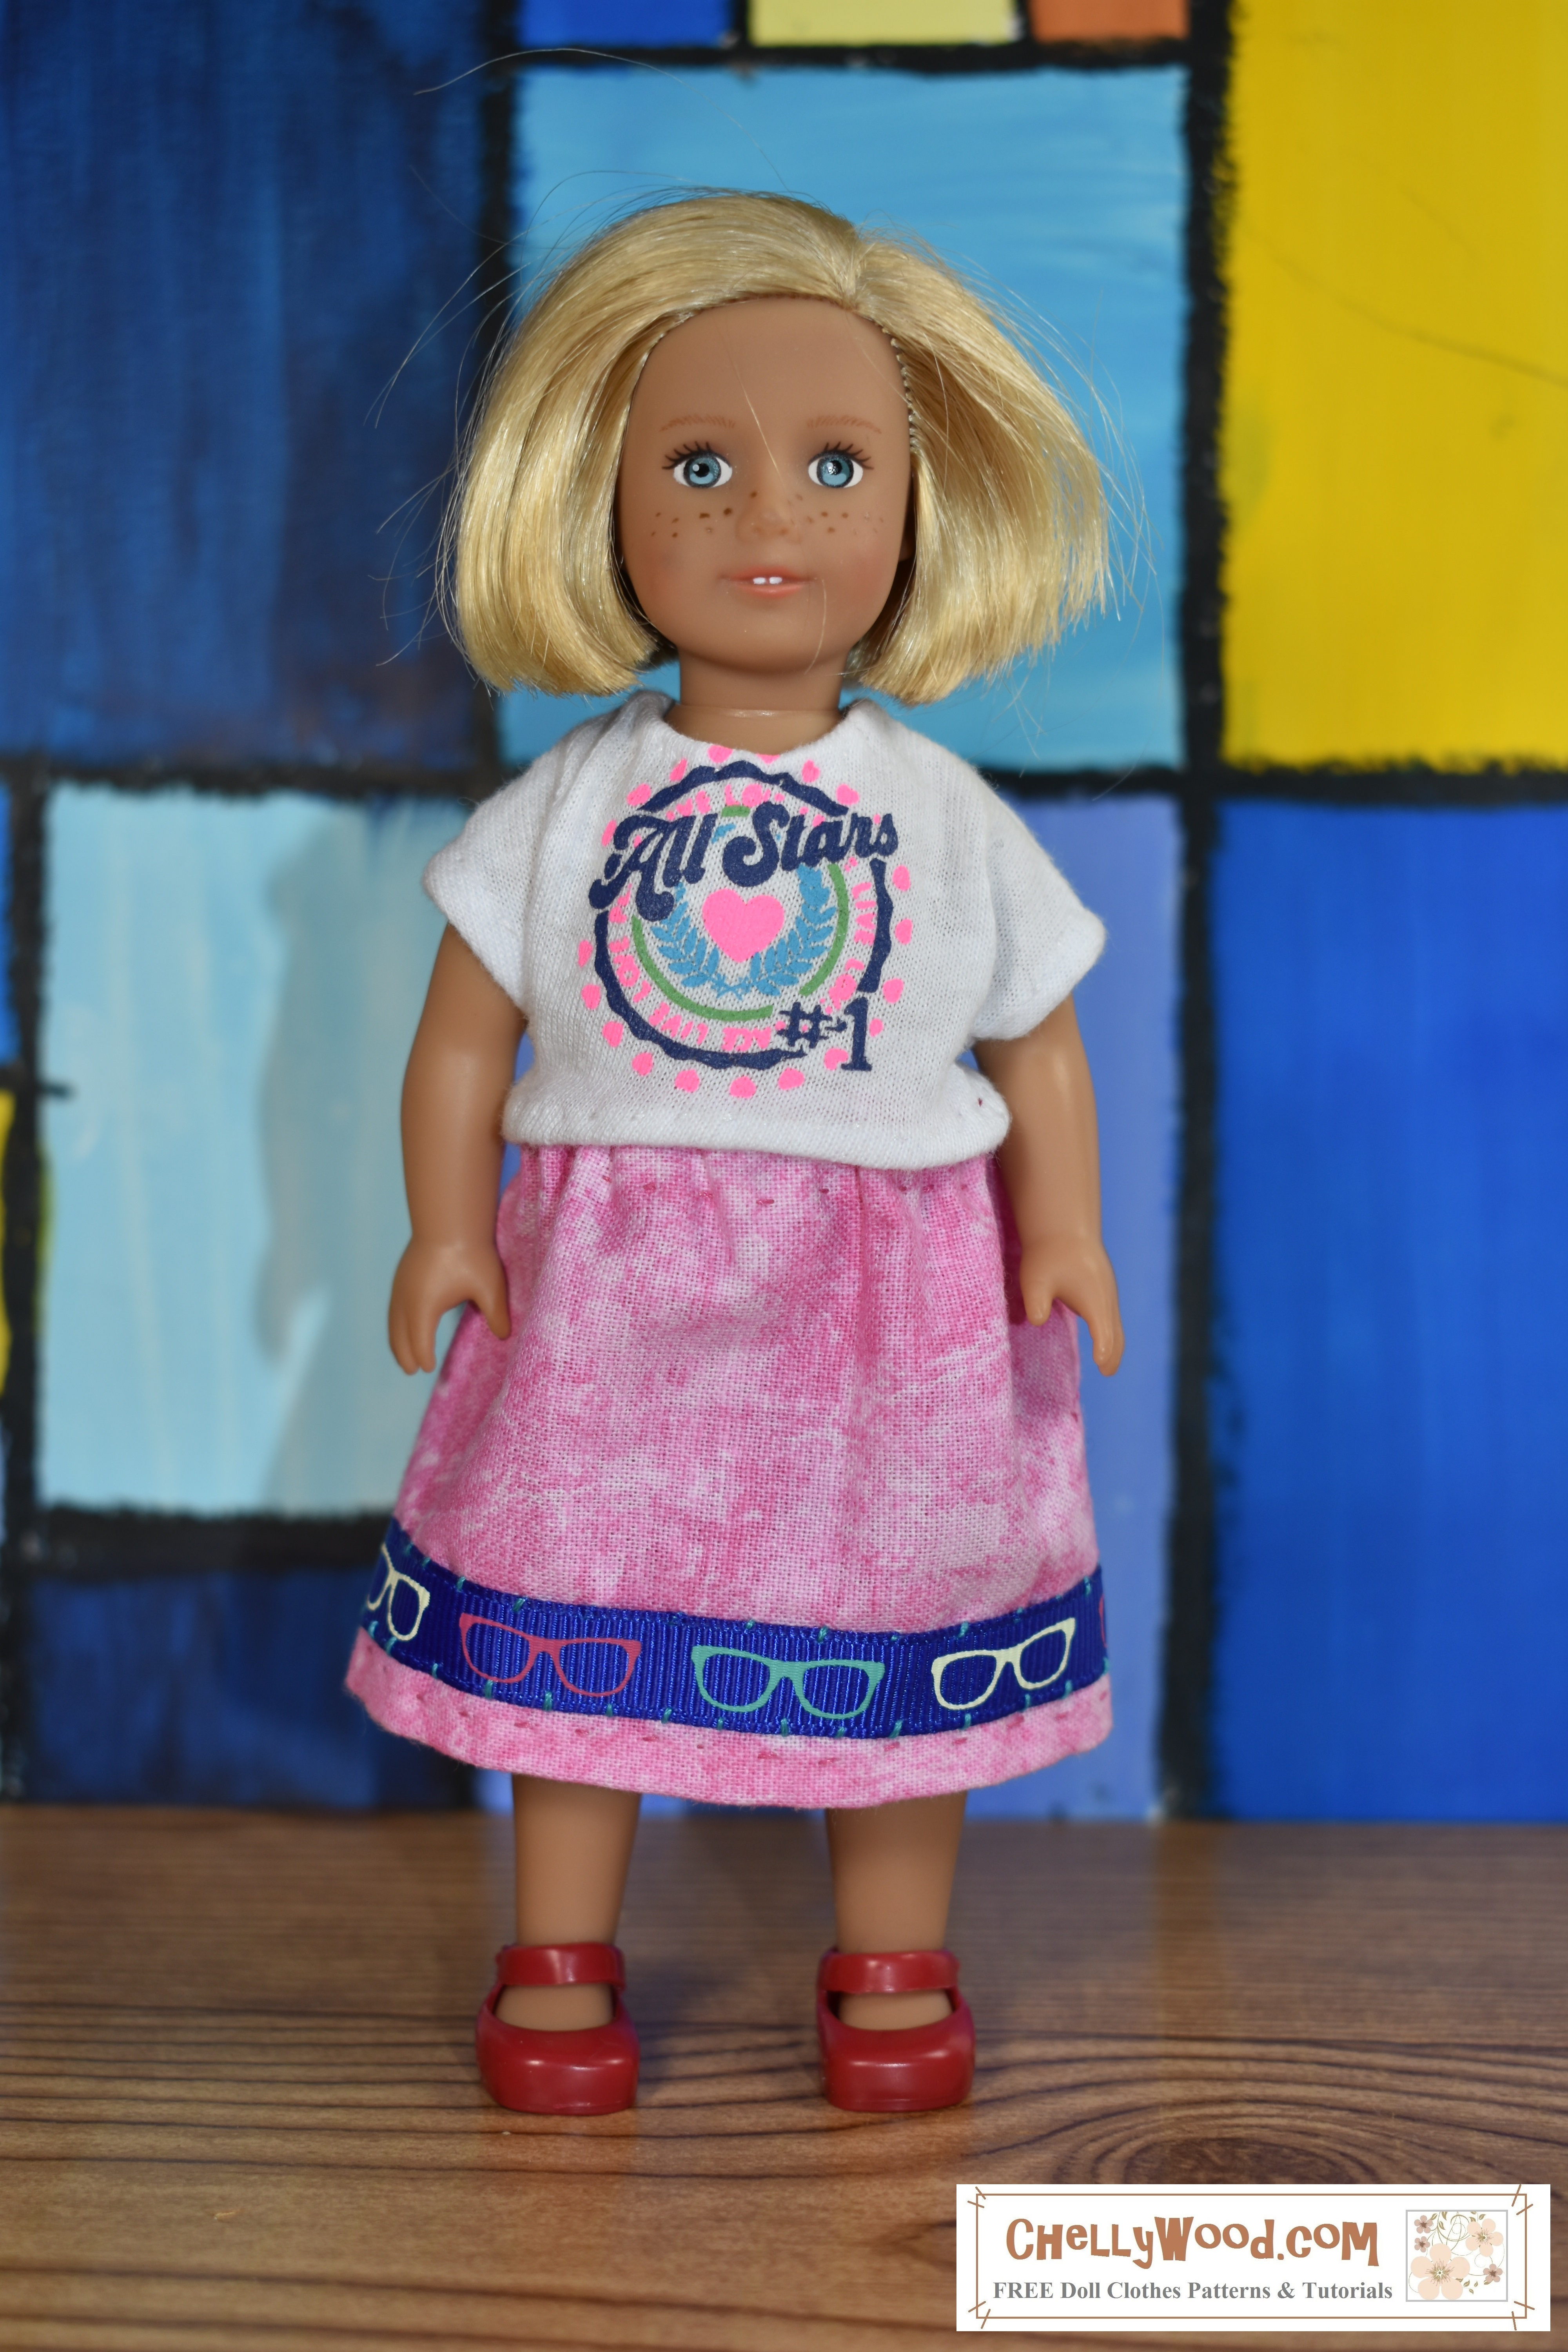 graphic about American Girl Clothes Patterns Free Printable referred to as PDFpattern Wednesday: Totally free 6-inch Mini #AmericanGirl #Doll